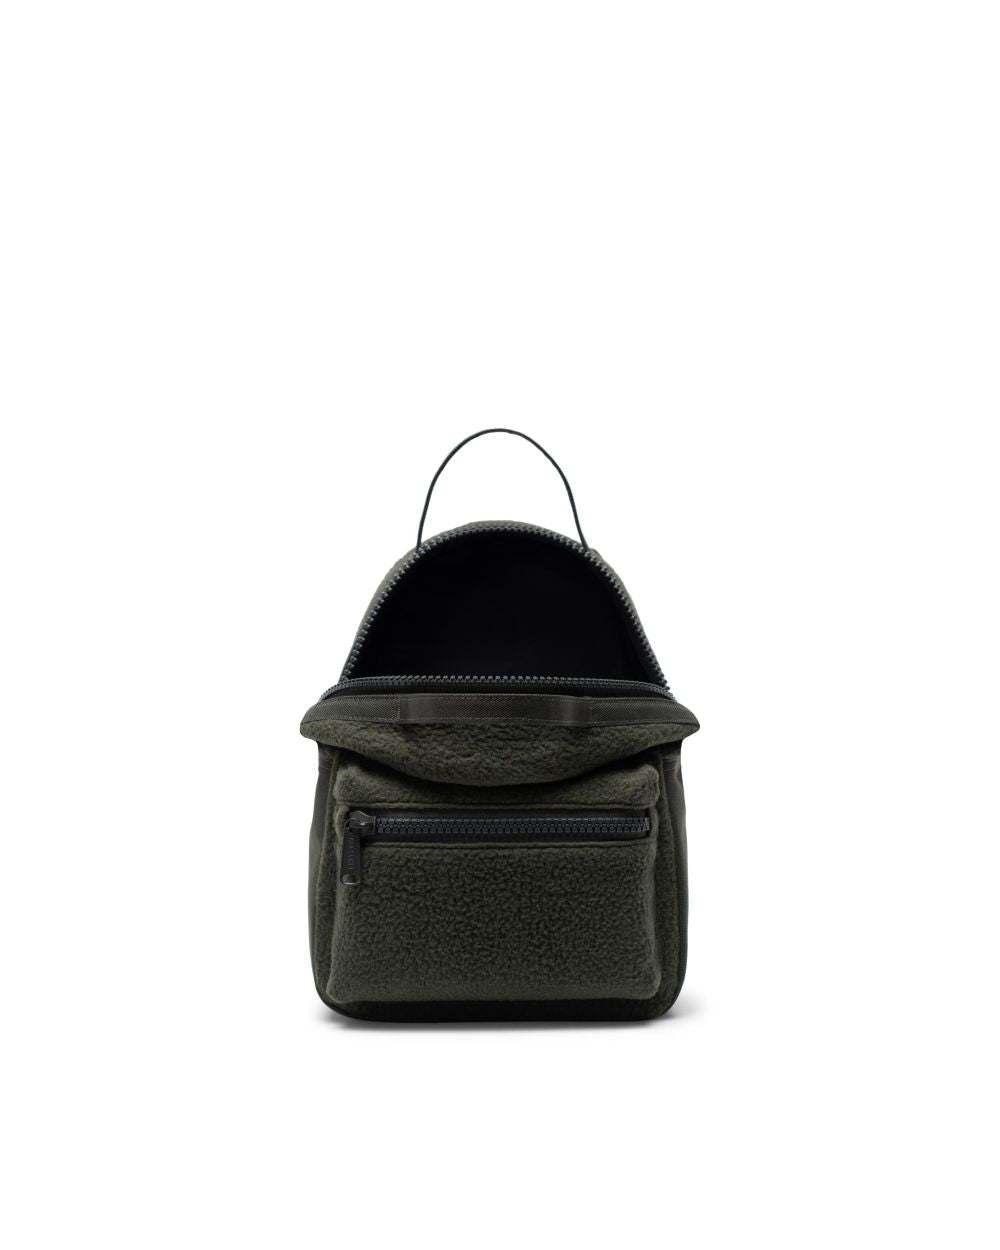 Herschel Nova Mini Backpack x Olive Sherpa